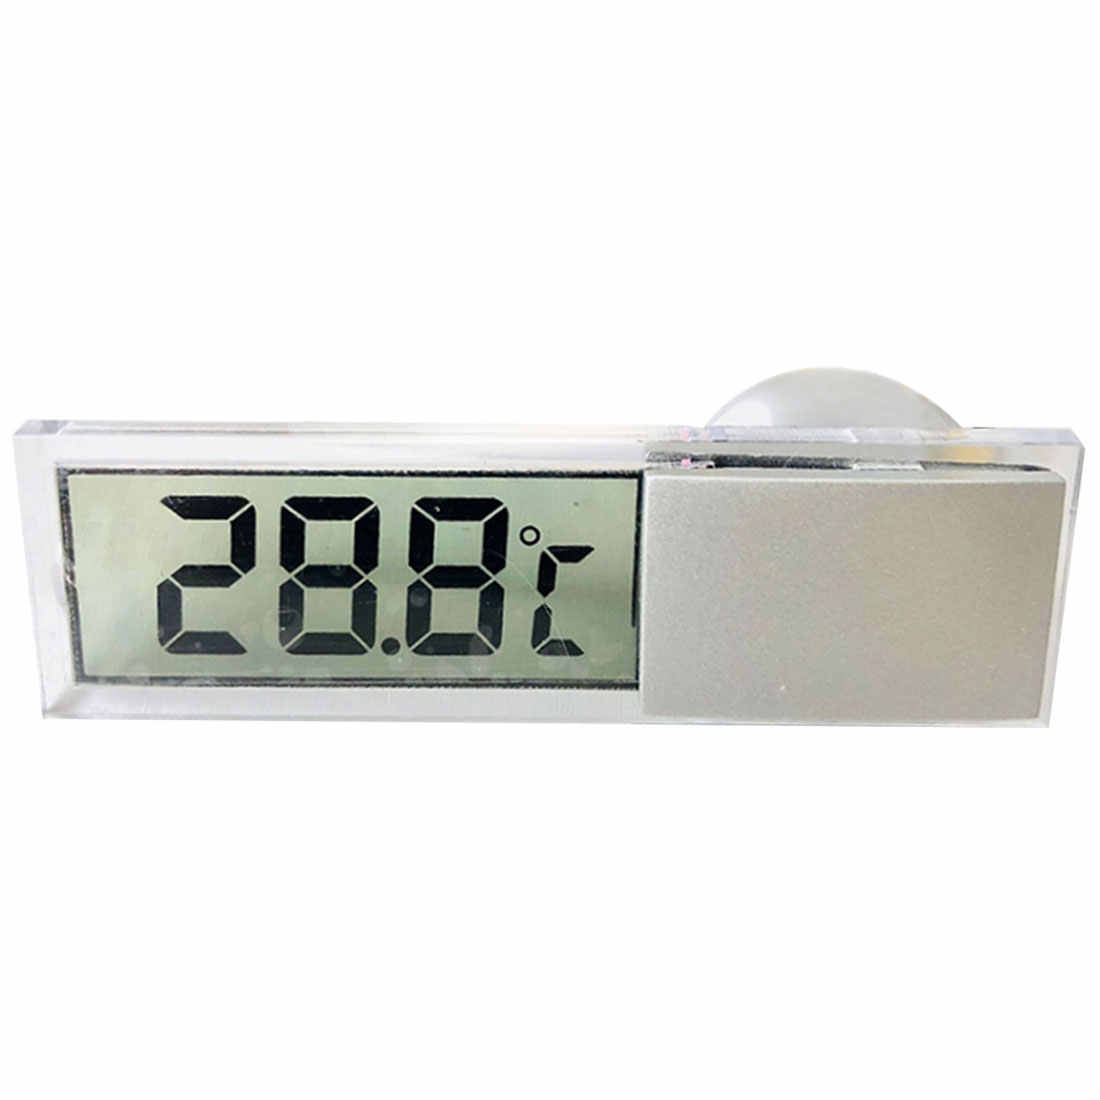 New   Weather Station LCD Digital Car Thermometer Thermostat Timer Clock Temperature Instruments Sensor Wall Type Meter -20-110C